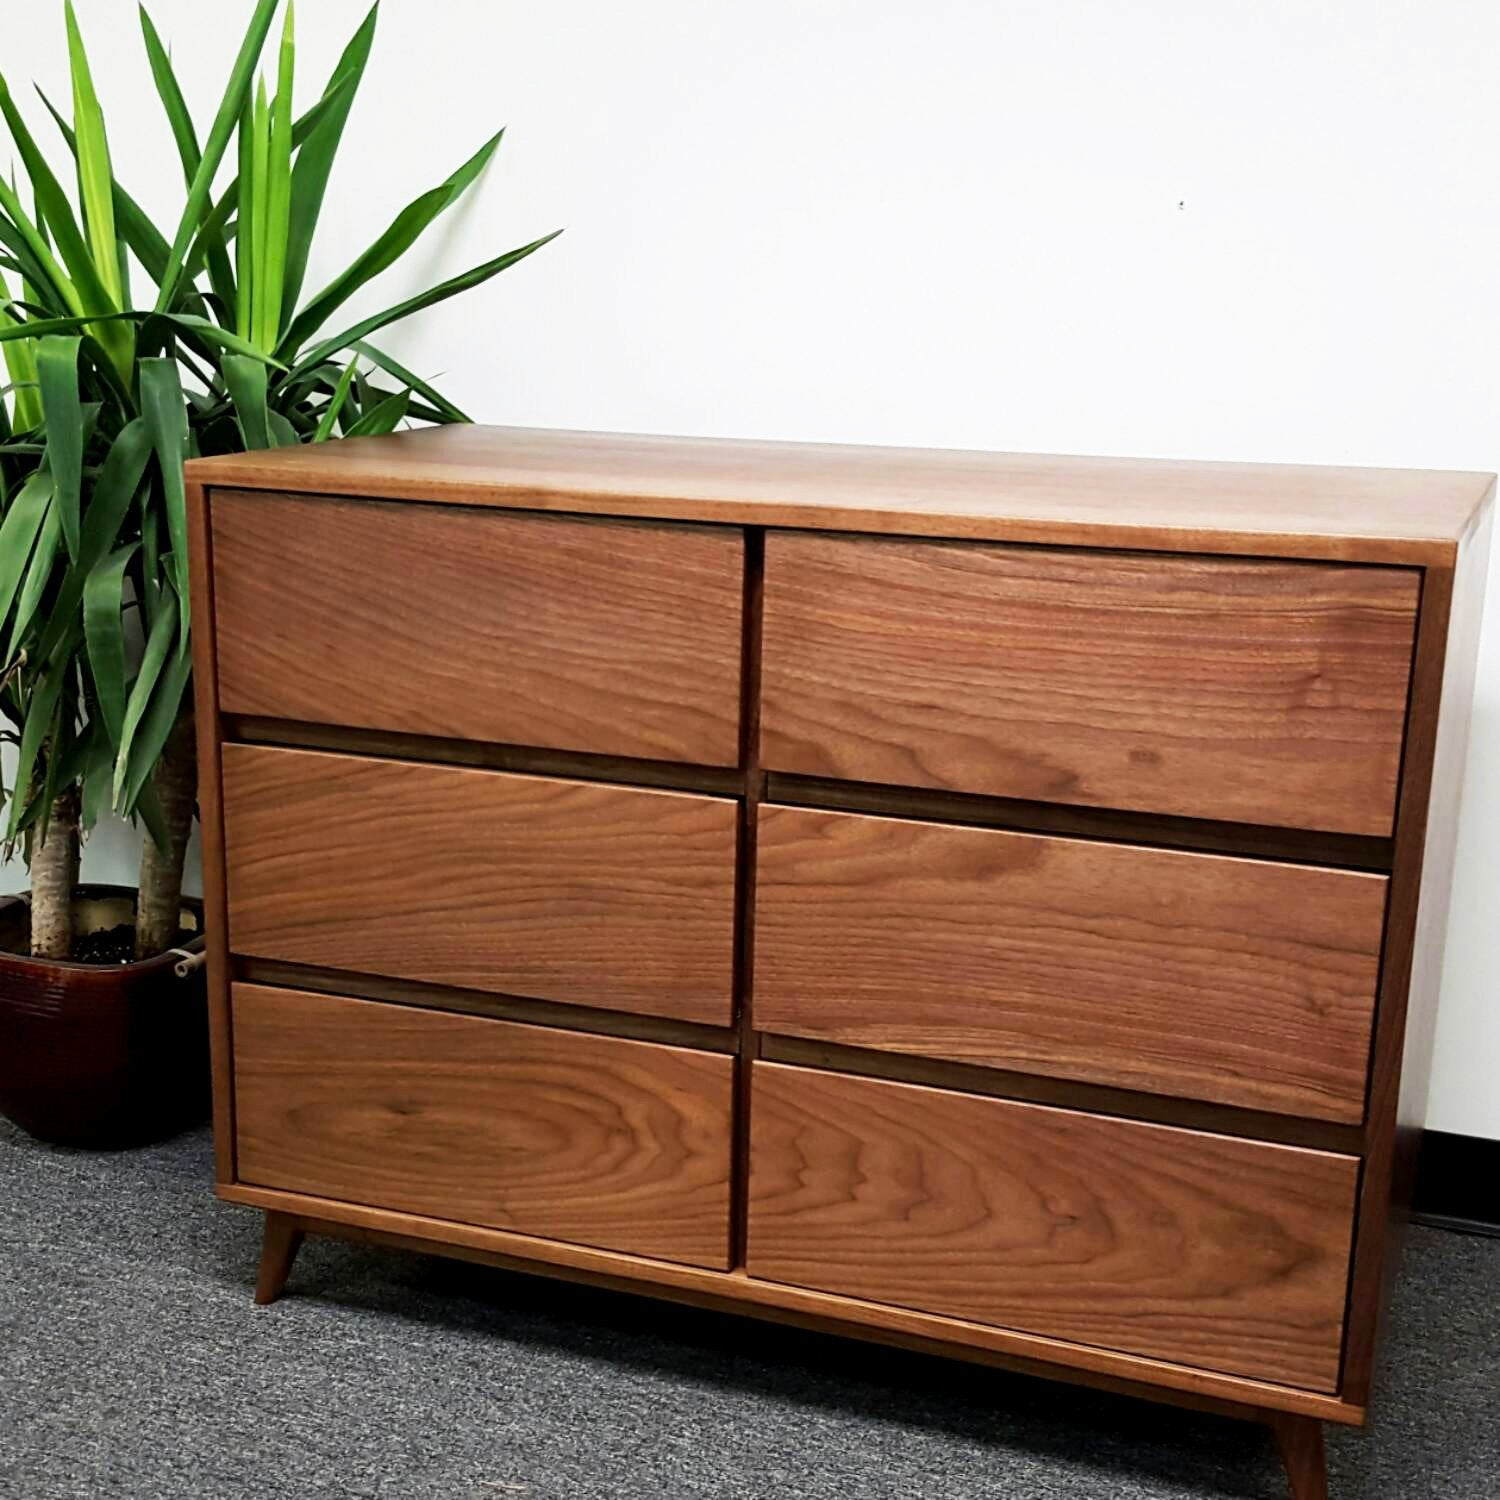 furniture drawers gb wood storage is a dresser rast chest ikea which made art pine products and solid en of hardwearing cm